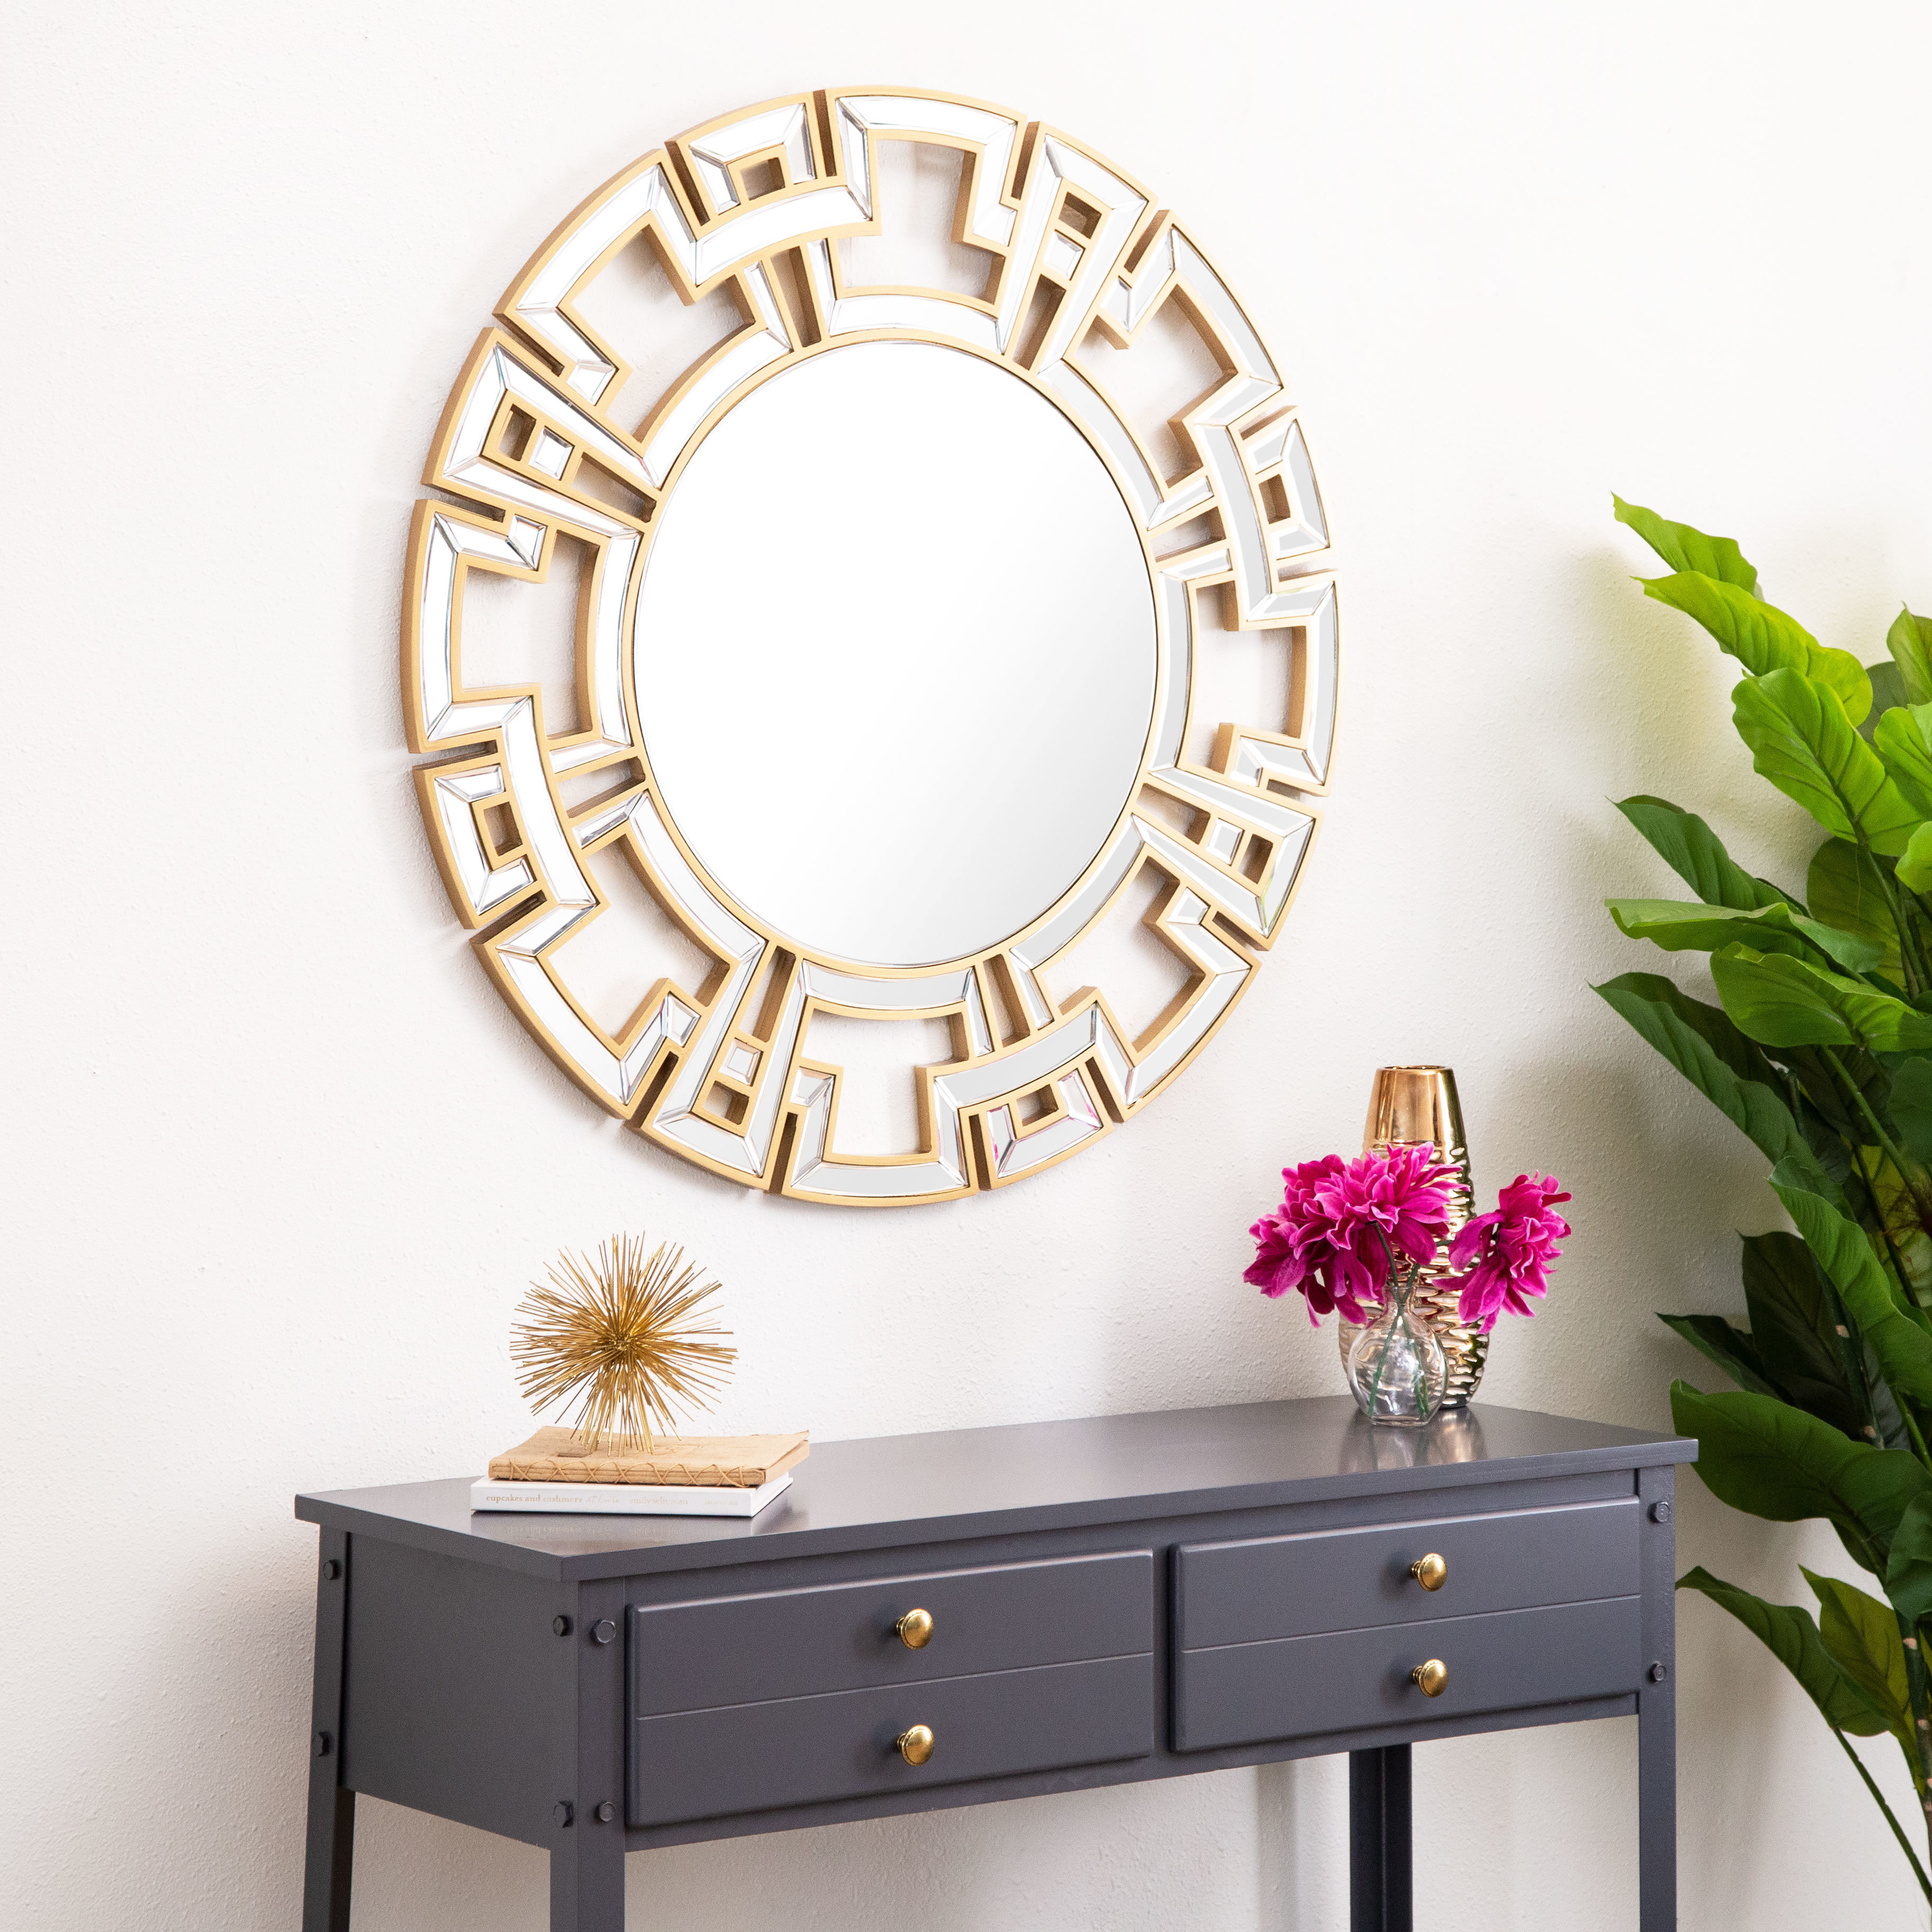 Modern & Contemporary 30 Inch Round Mirror | Allmodern Throughout Round Eclectic Accent Mirrors (View 6 of 30)